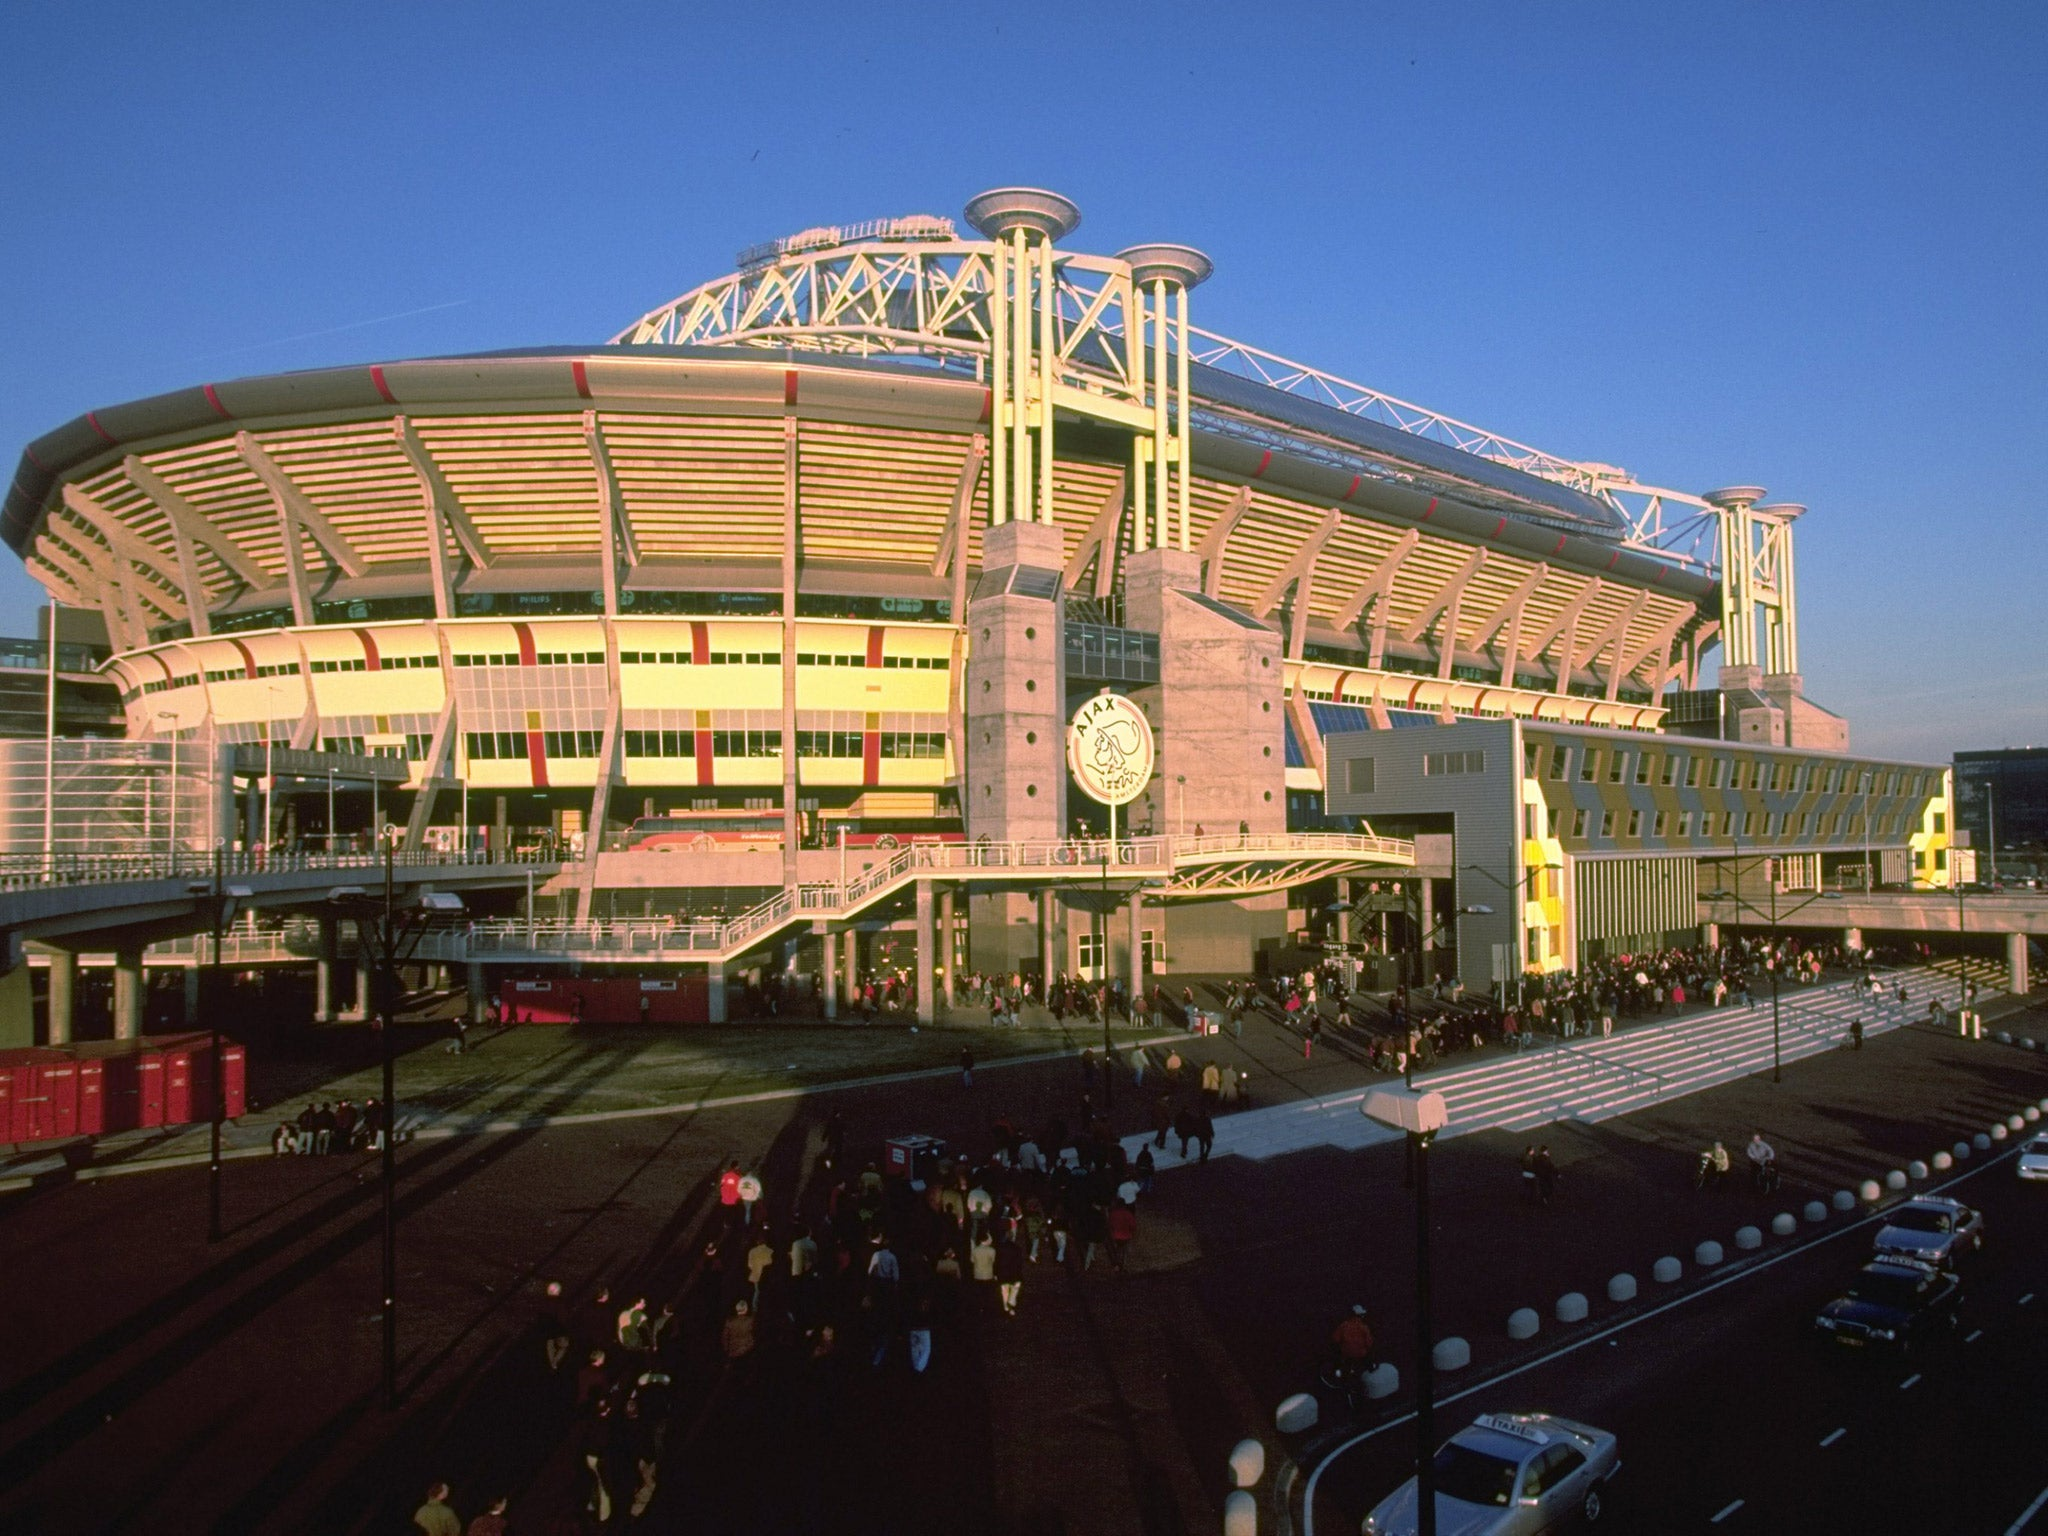 Johan cruyff dutch fa to rename the amsterdam arena after for Arena amsterdam